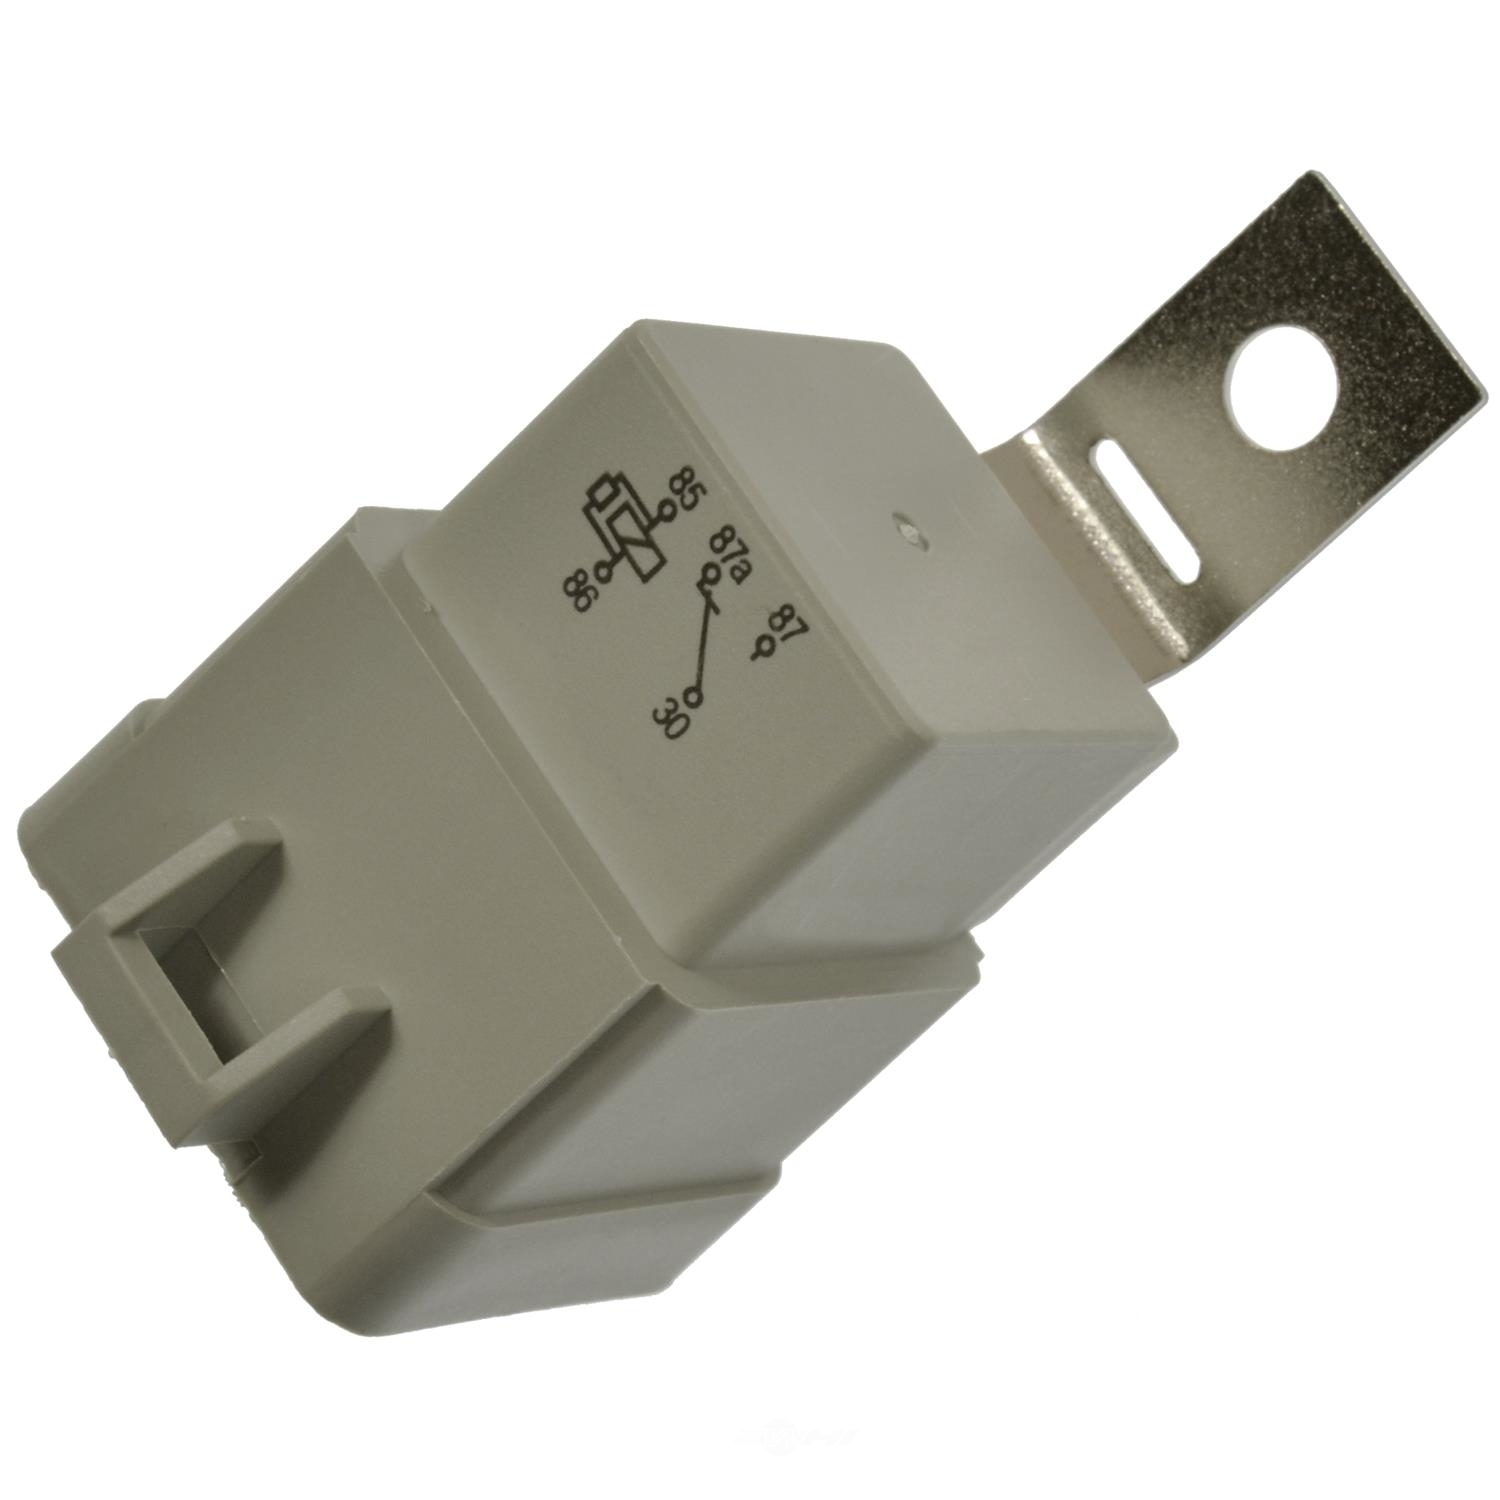 STANDARD T-SERIES - Auxiliary Heater Relay - STT RY282T